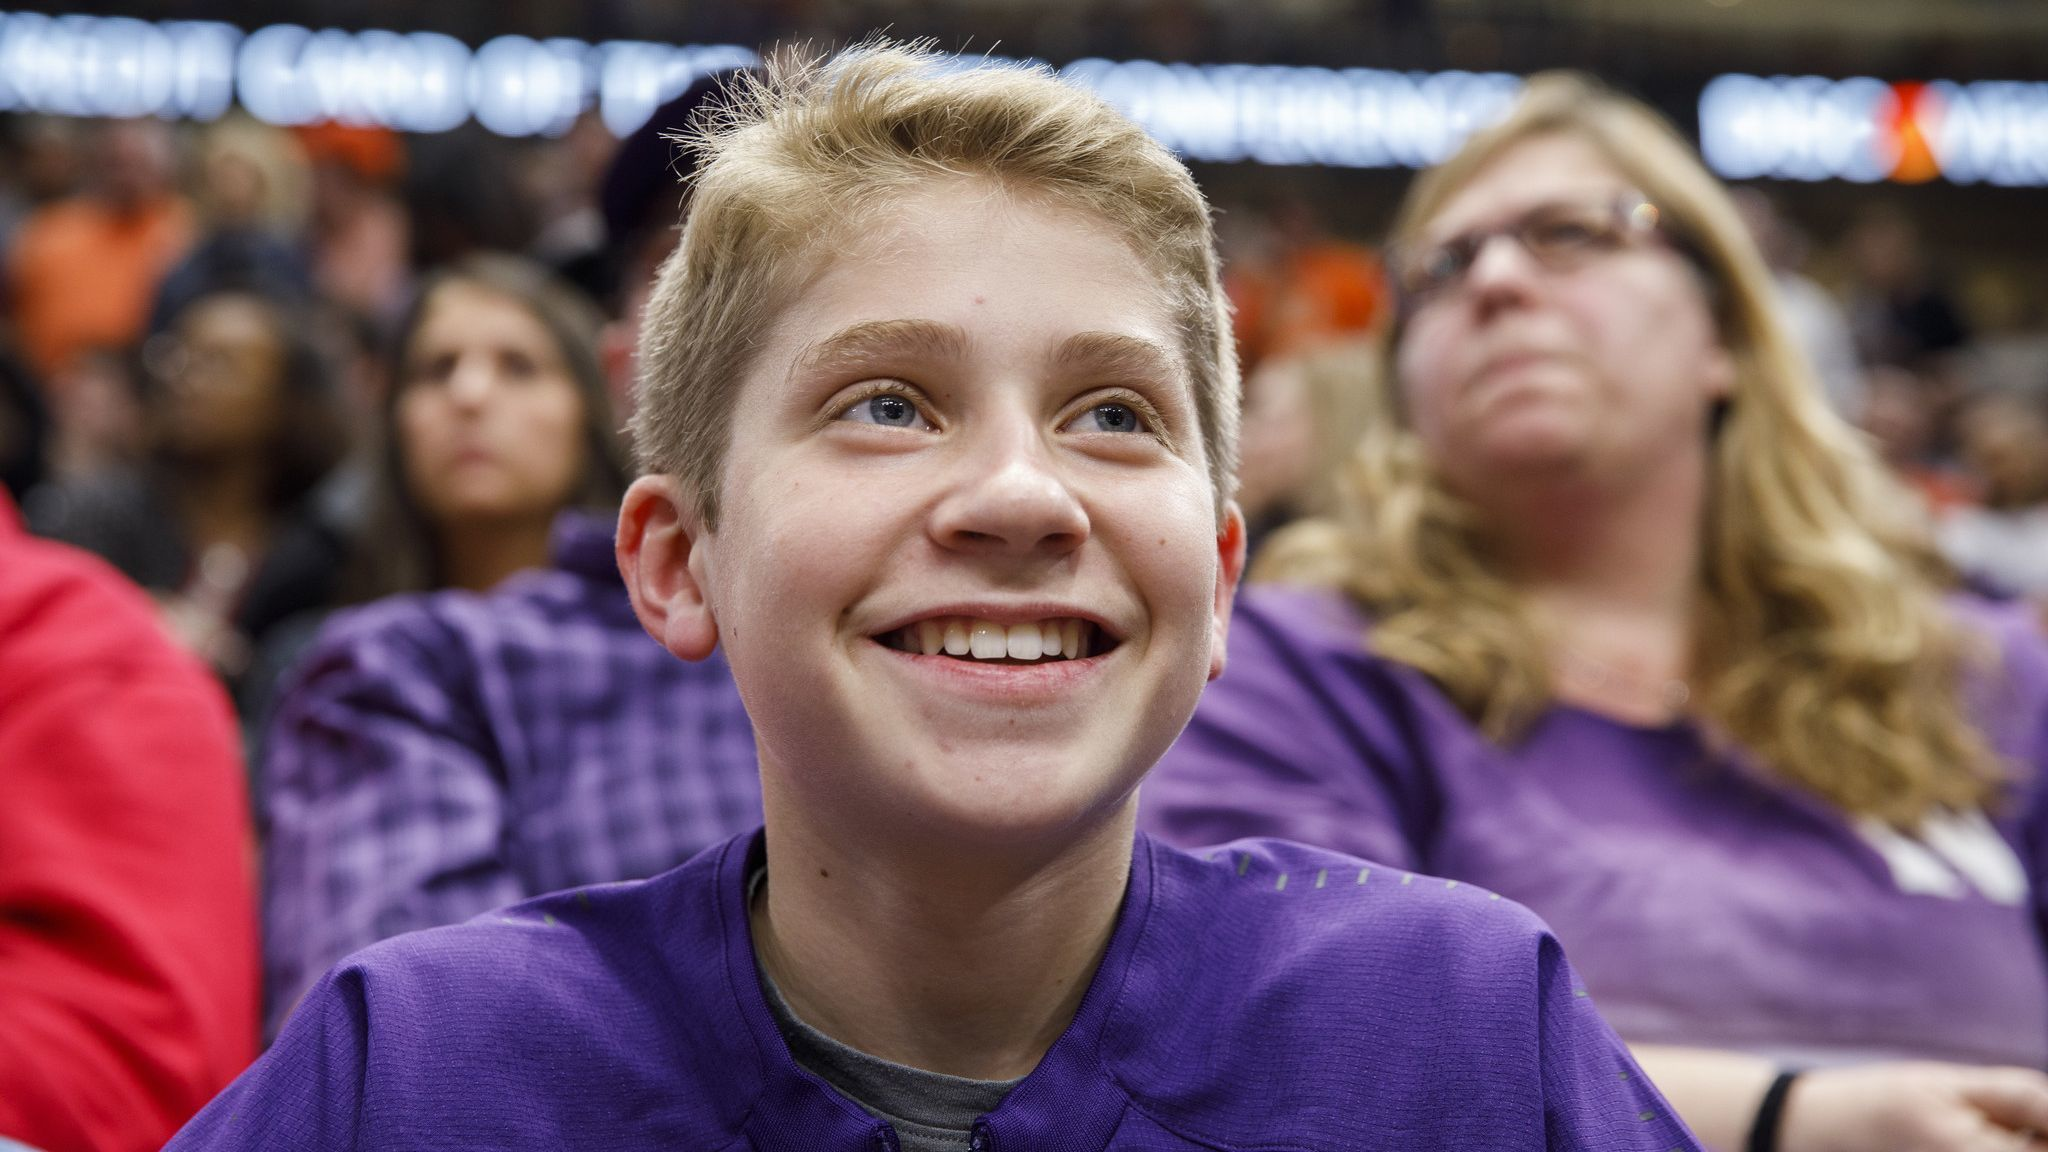 A new ad will throw 'crying Northwestern Kid' back into the national spotlight — and he's OK with that: 'It's who I am'